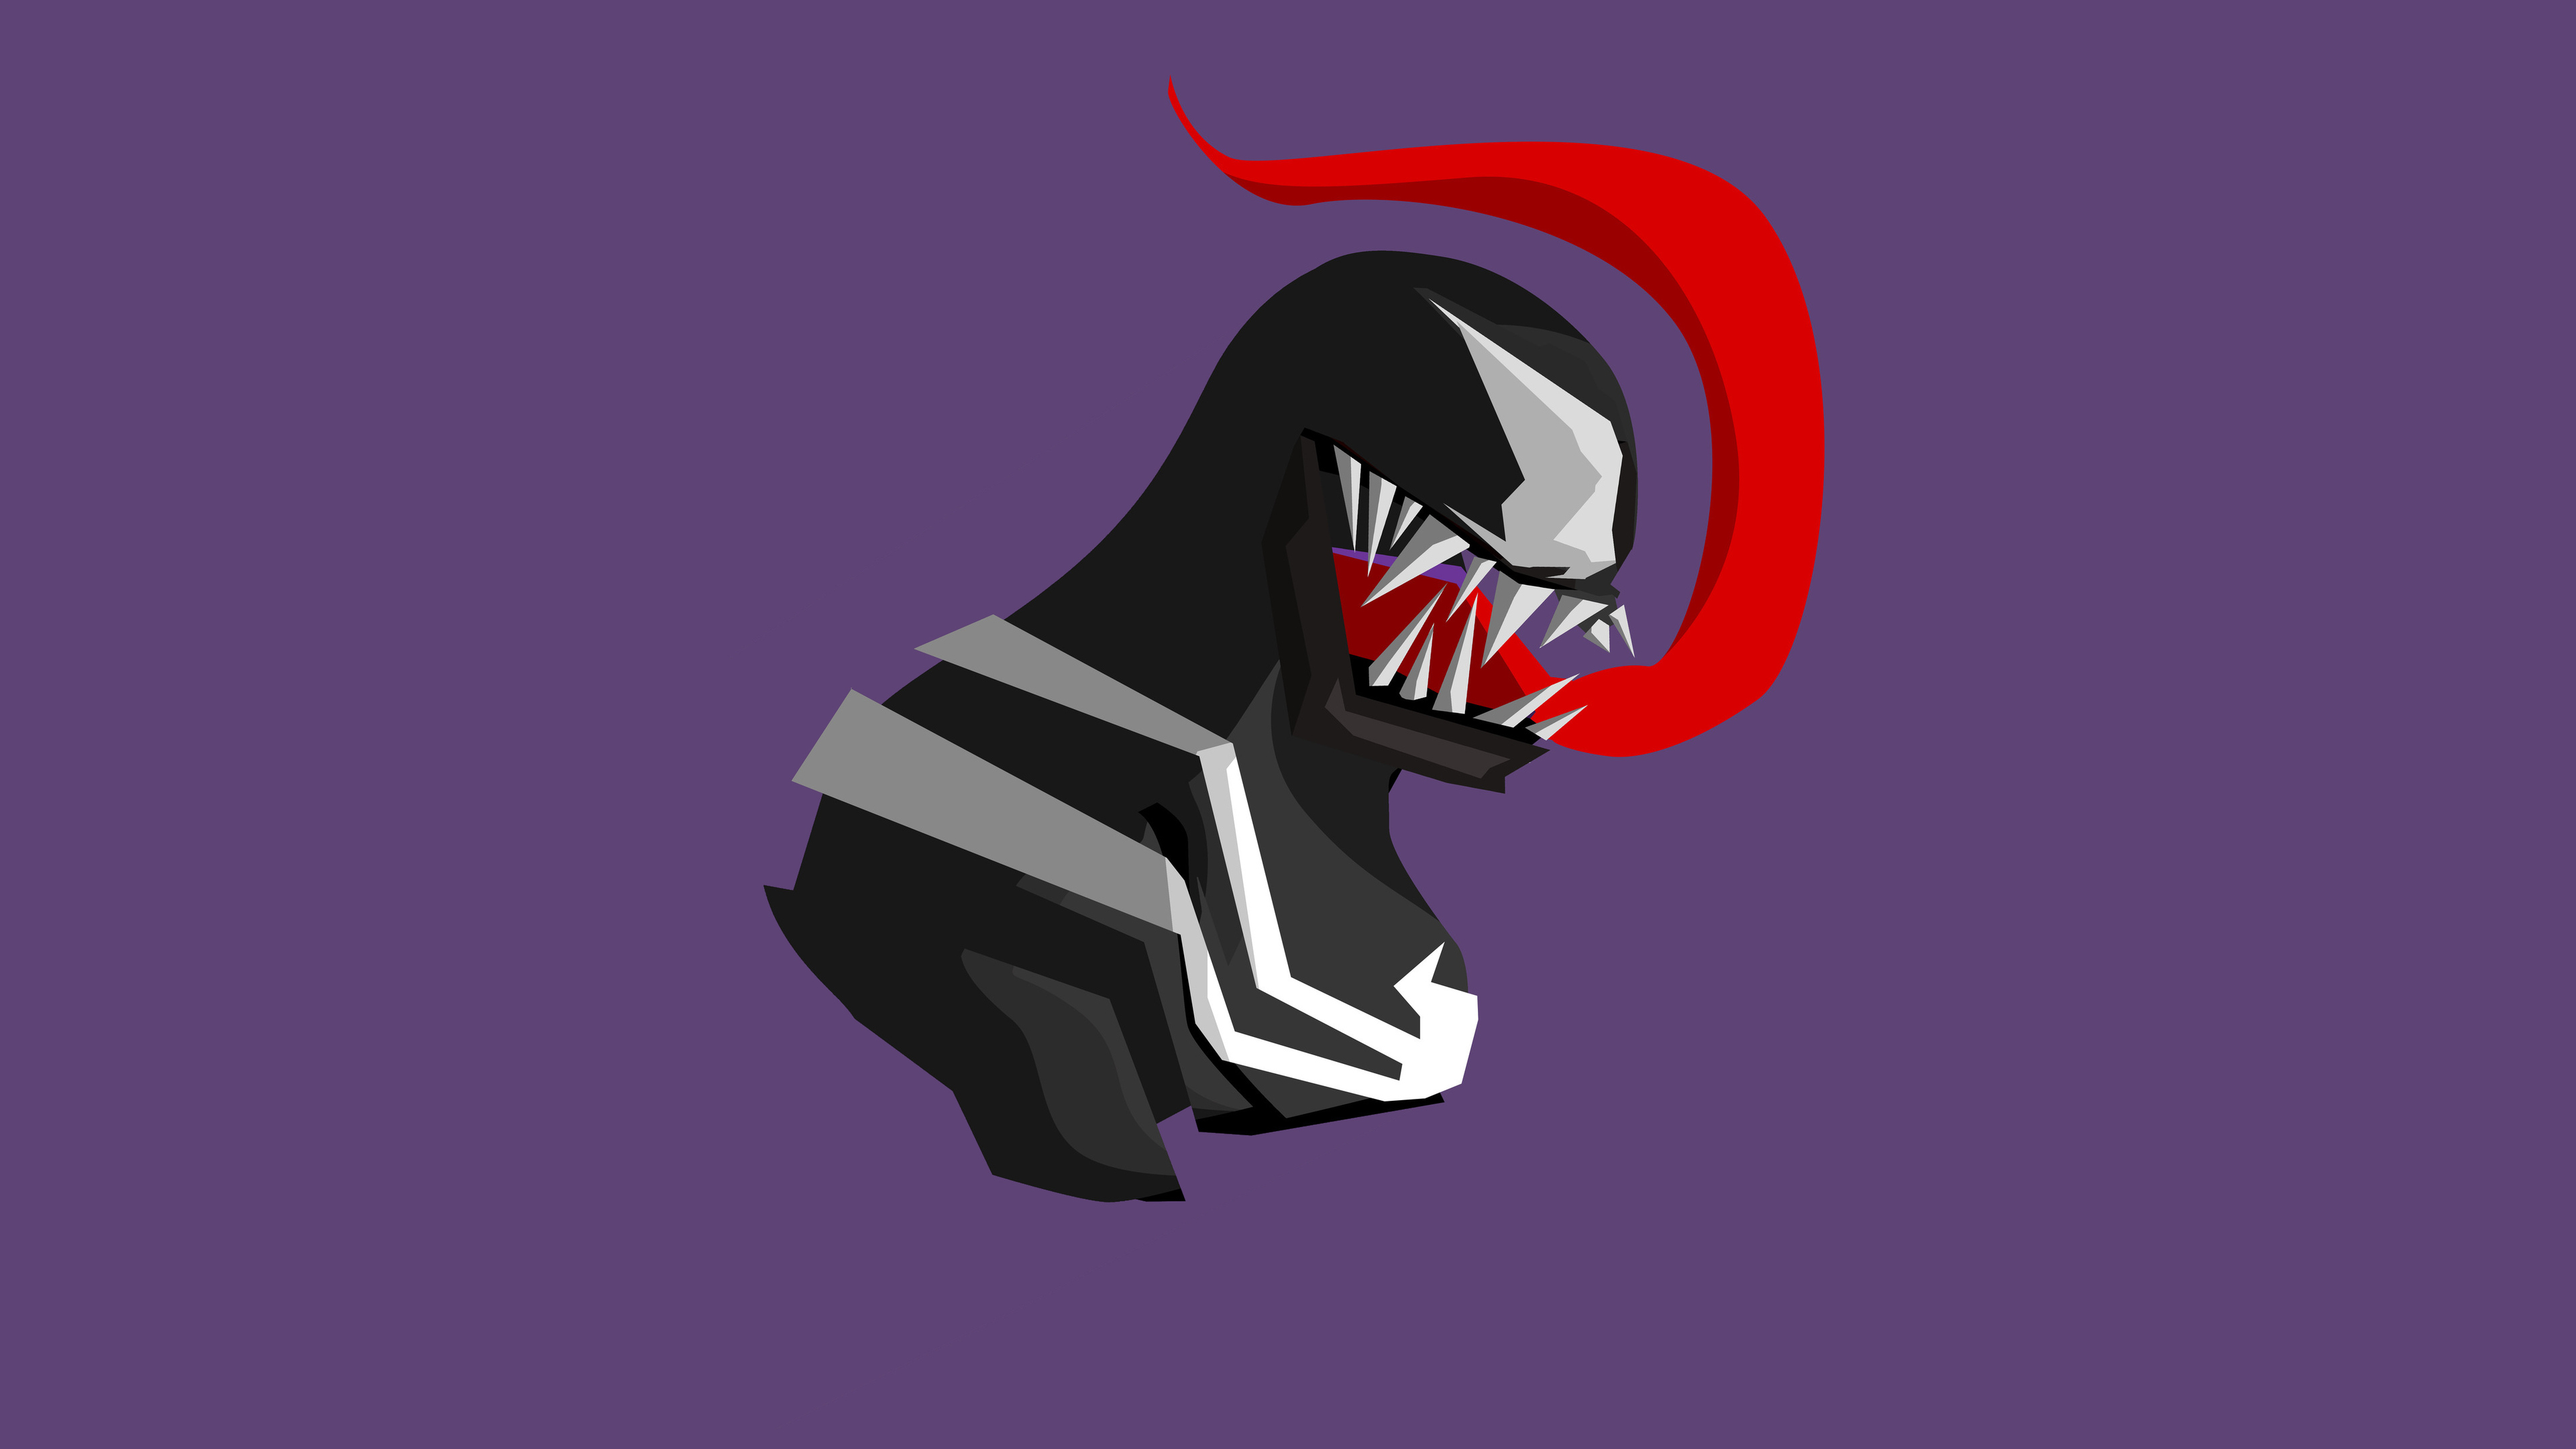 3840x2160 Venom Minimalist 4k 4k HD 4k Wallpapers, Images ...